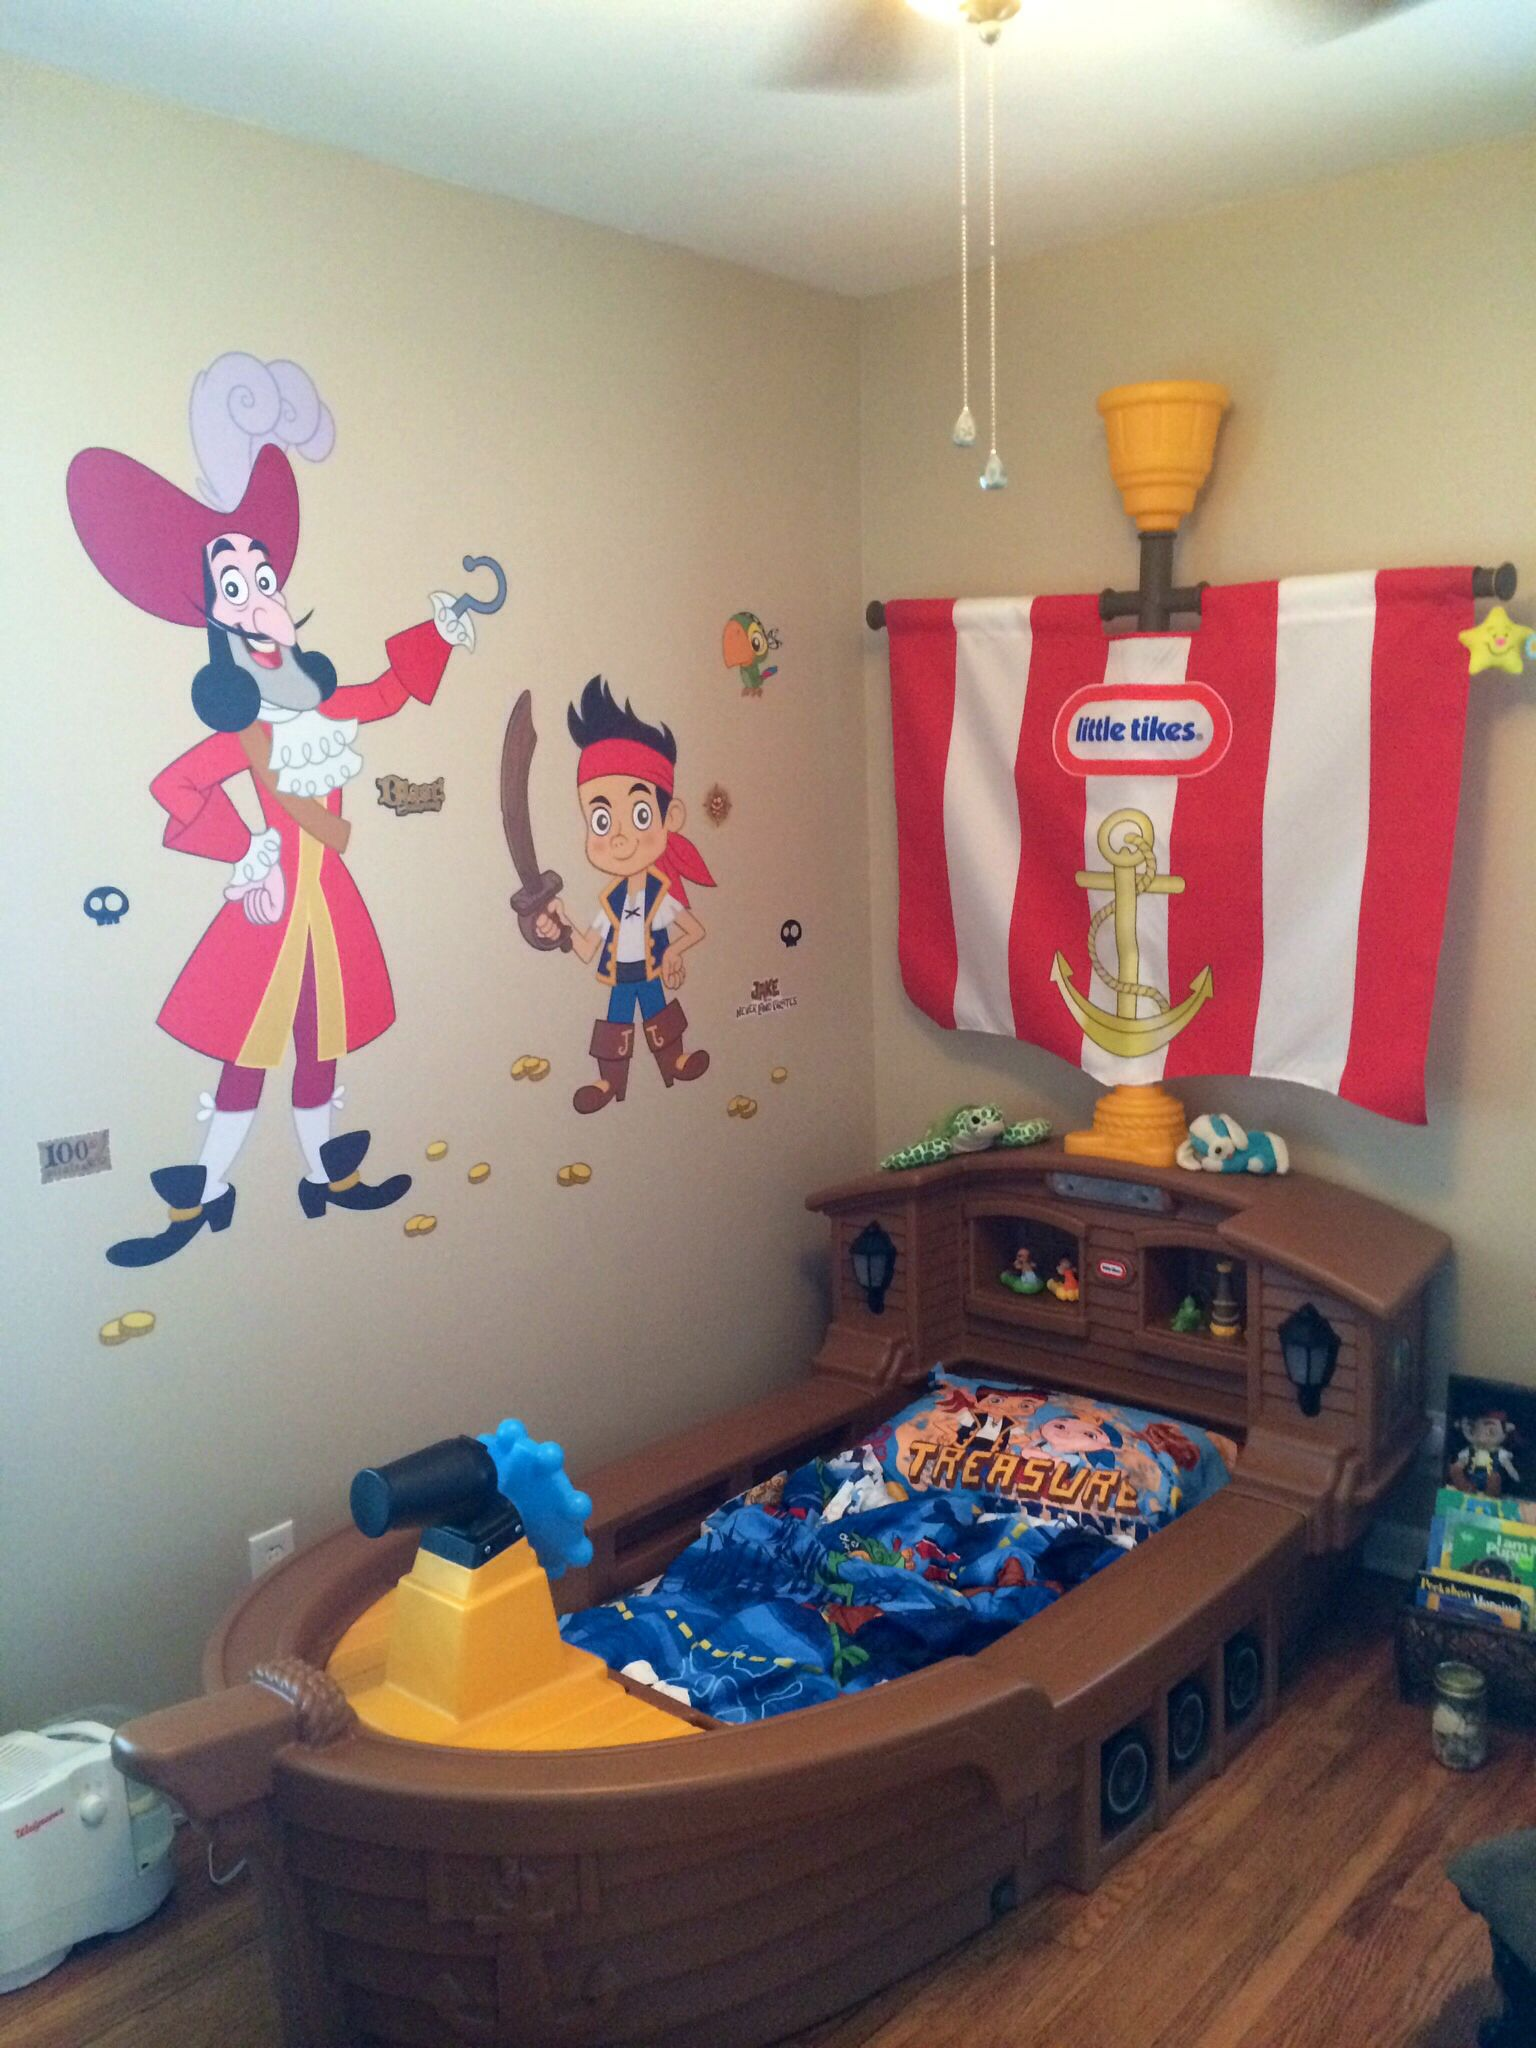 My Son S Jake And The Neverland Pirates Room So Happy With How It Turned Out Ordered Wall Stickers On Amazon Pirate Kids Room Pirate Room Diy Boy Bedroom